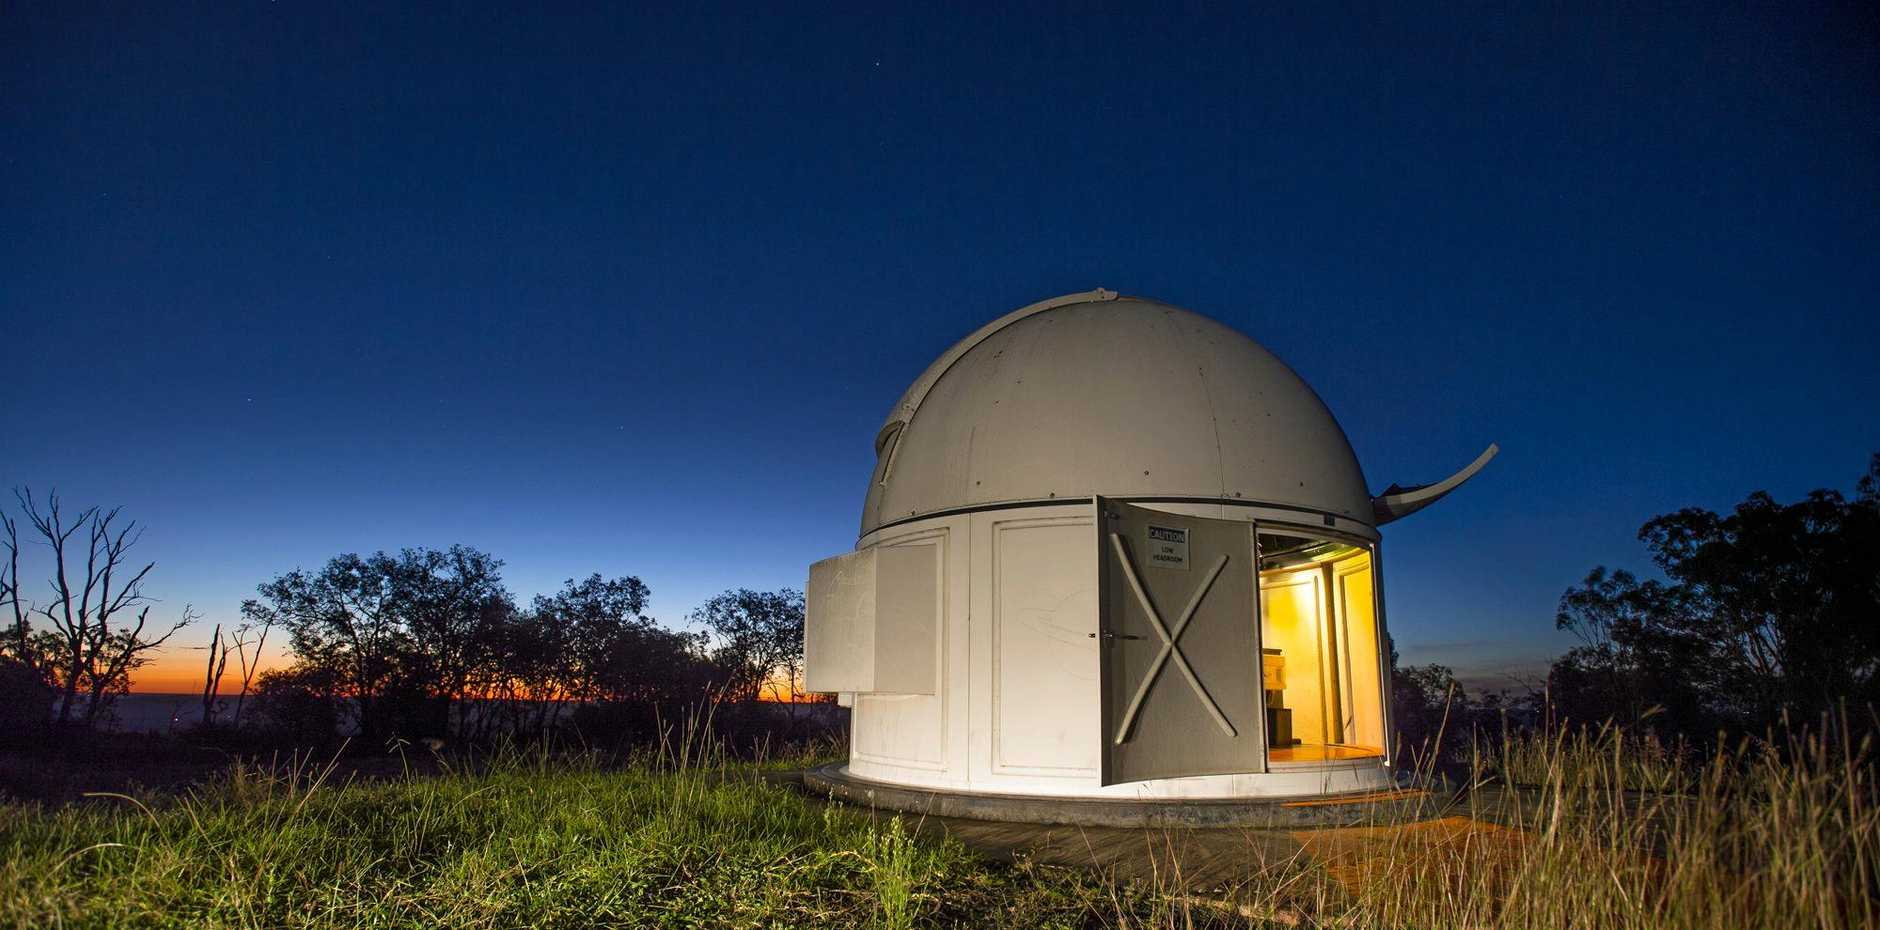 USQ's Festival of Astronomy & Space, coinciding with World Space Week, will include free public talks in Toowoomba, Brisbane and Springfield from October 3 to 10.